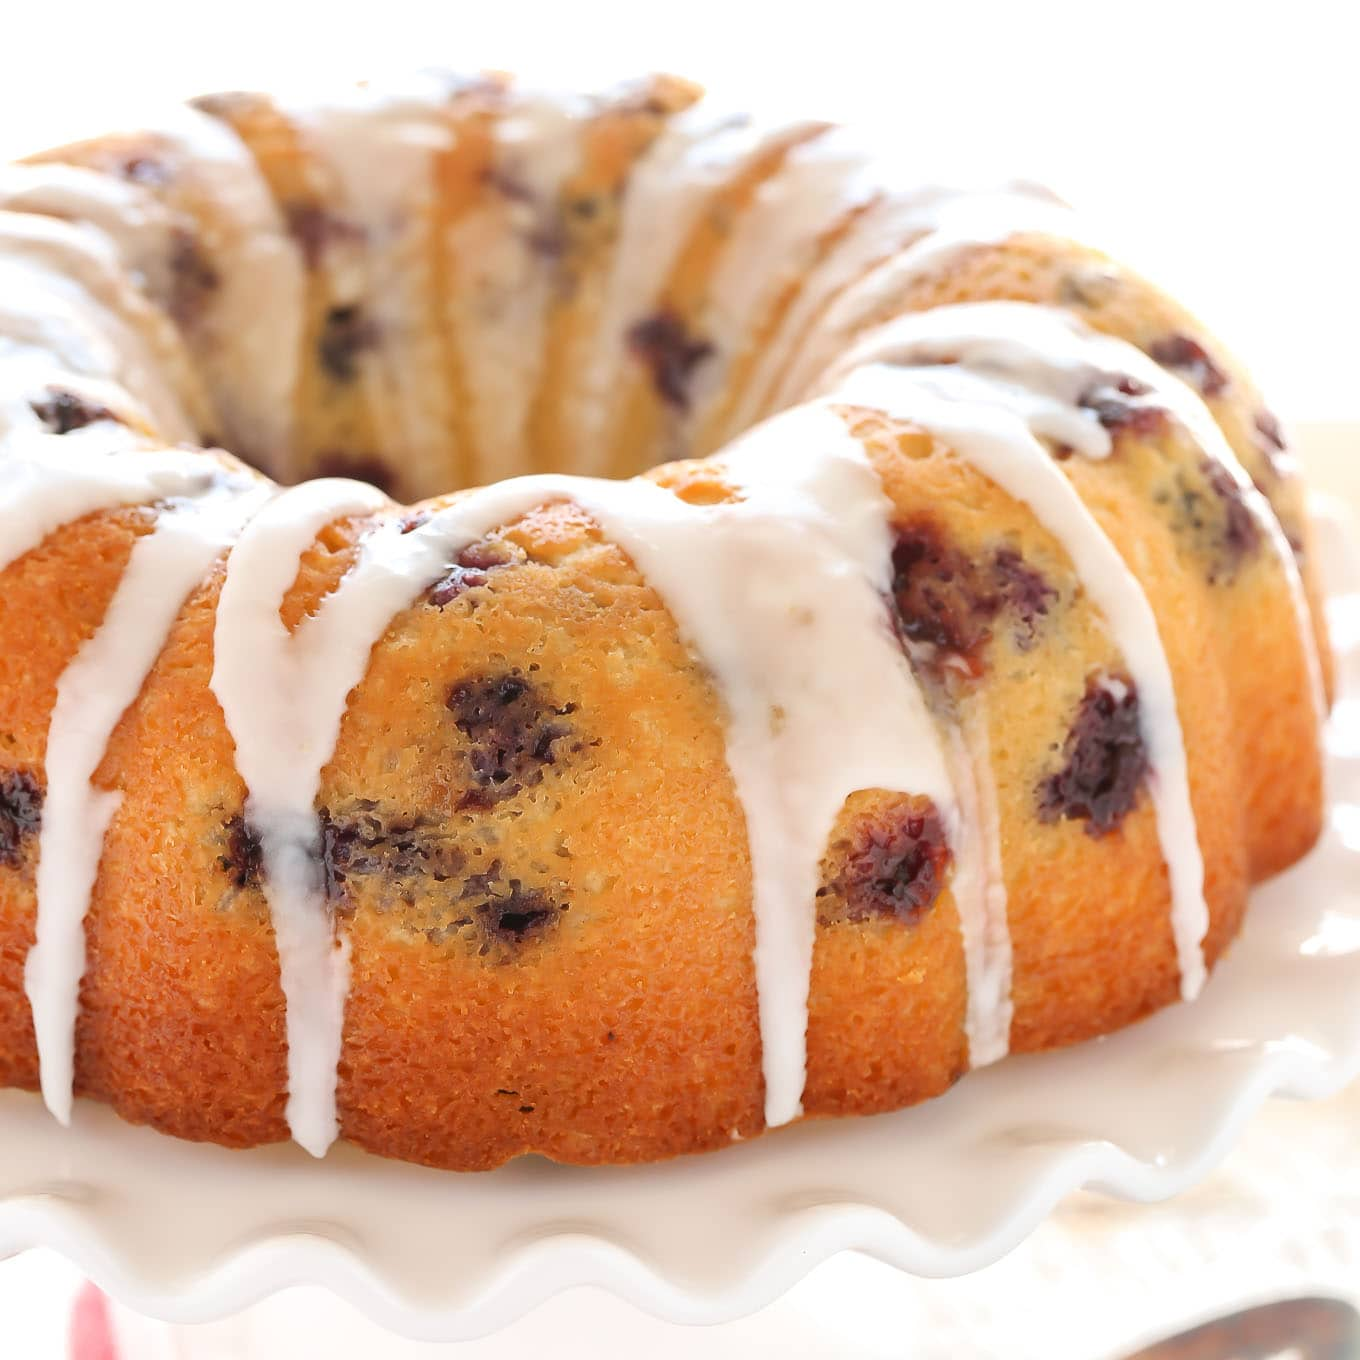 Lemon Bundt Cake Recipe Using Lemon Cake Mix